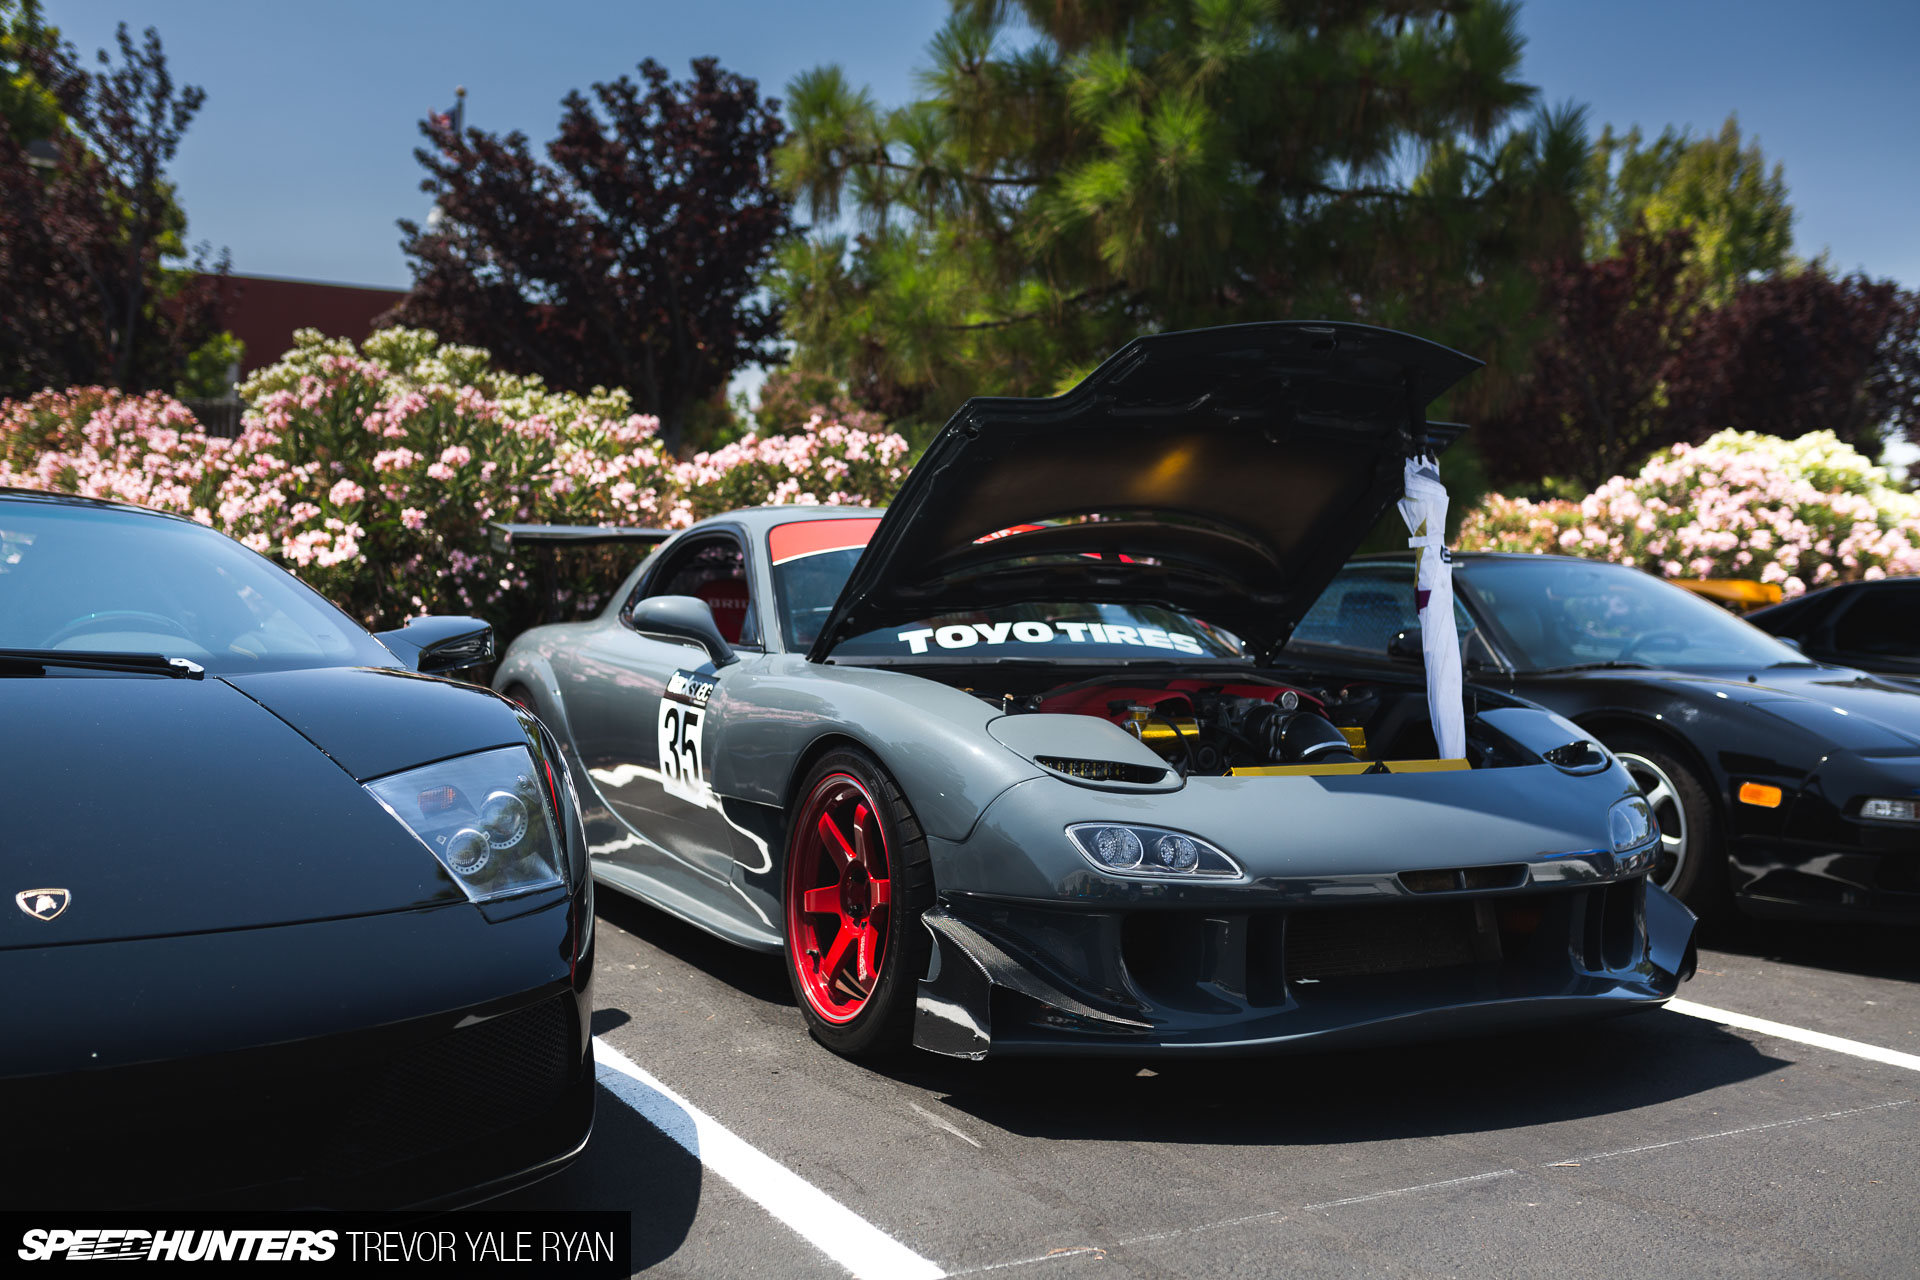 [Image: 2018-SH-Trackspec-4-Year-Party-Trevor-Ryan_025.jpg]